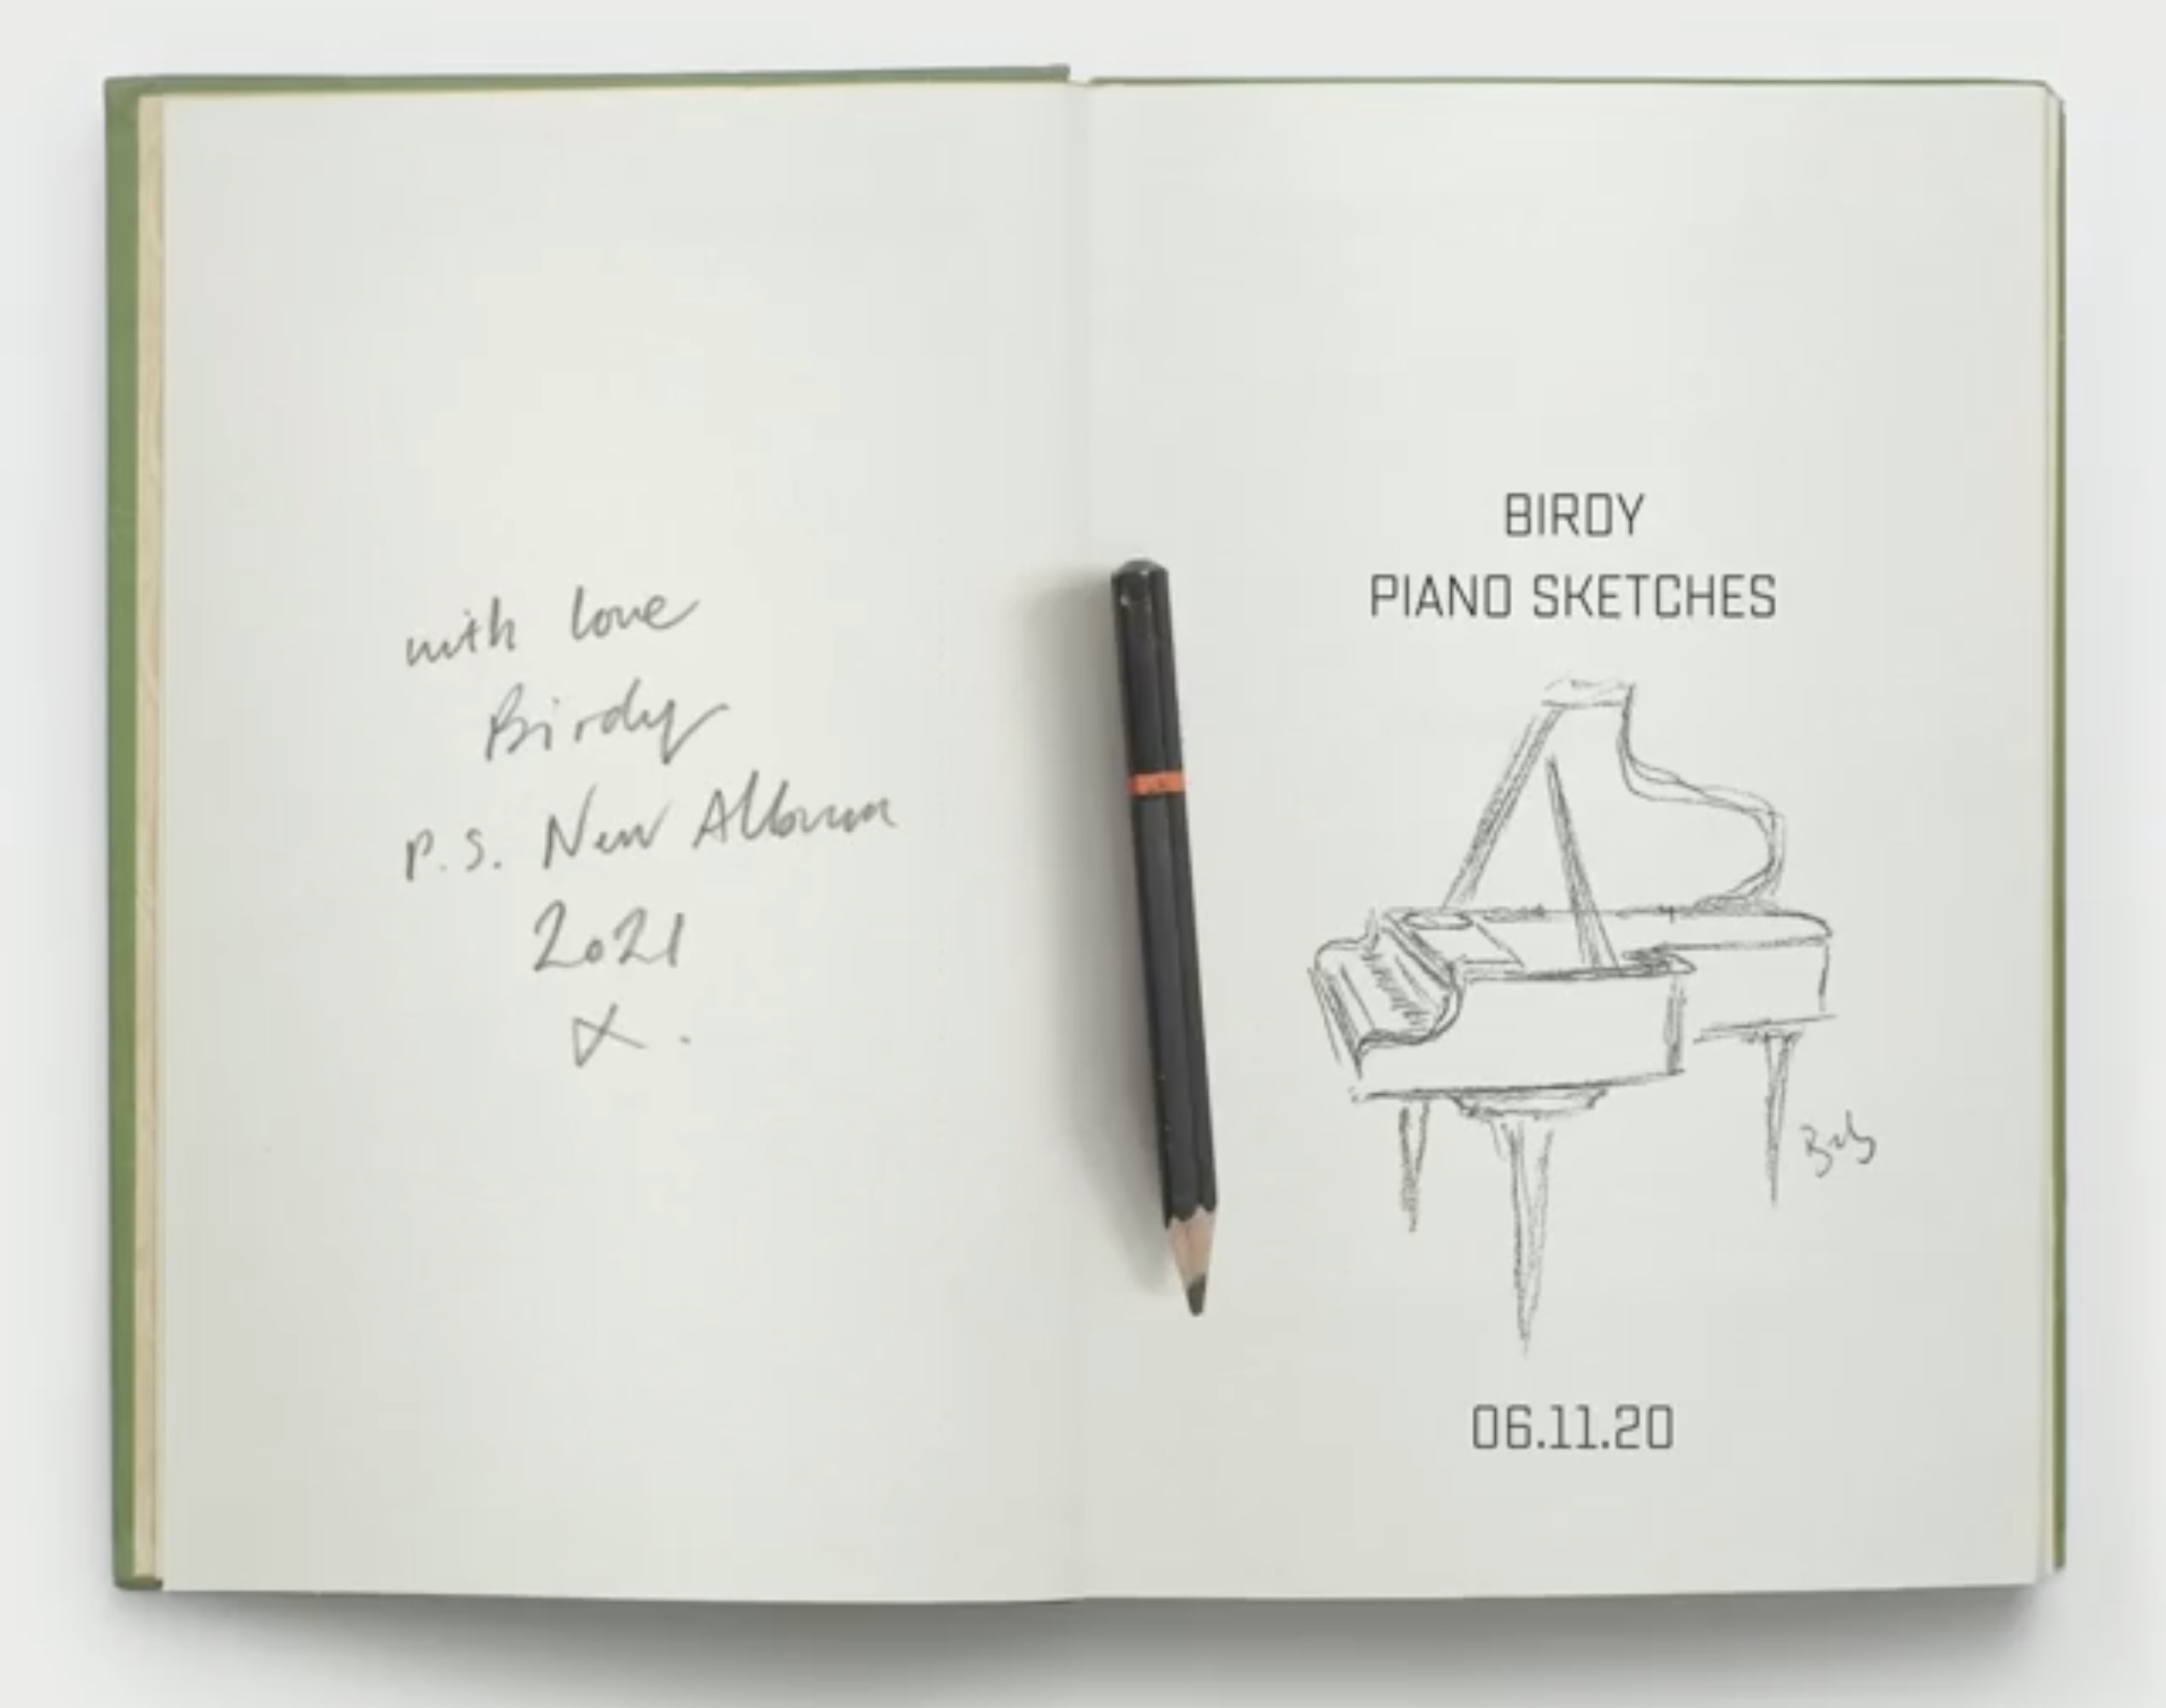 Birdy - Piano Sketches